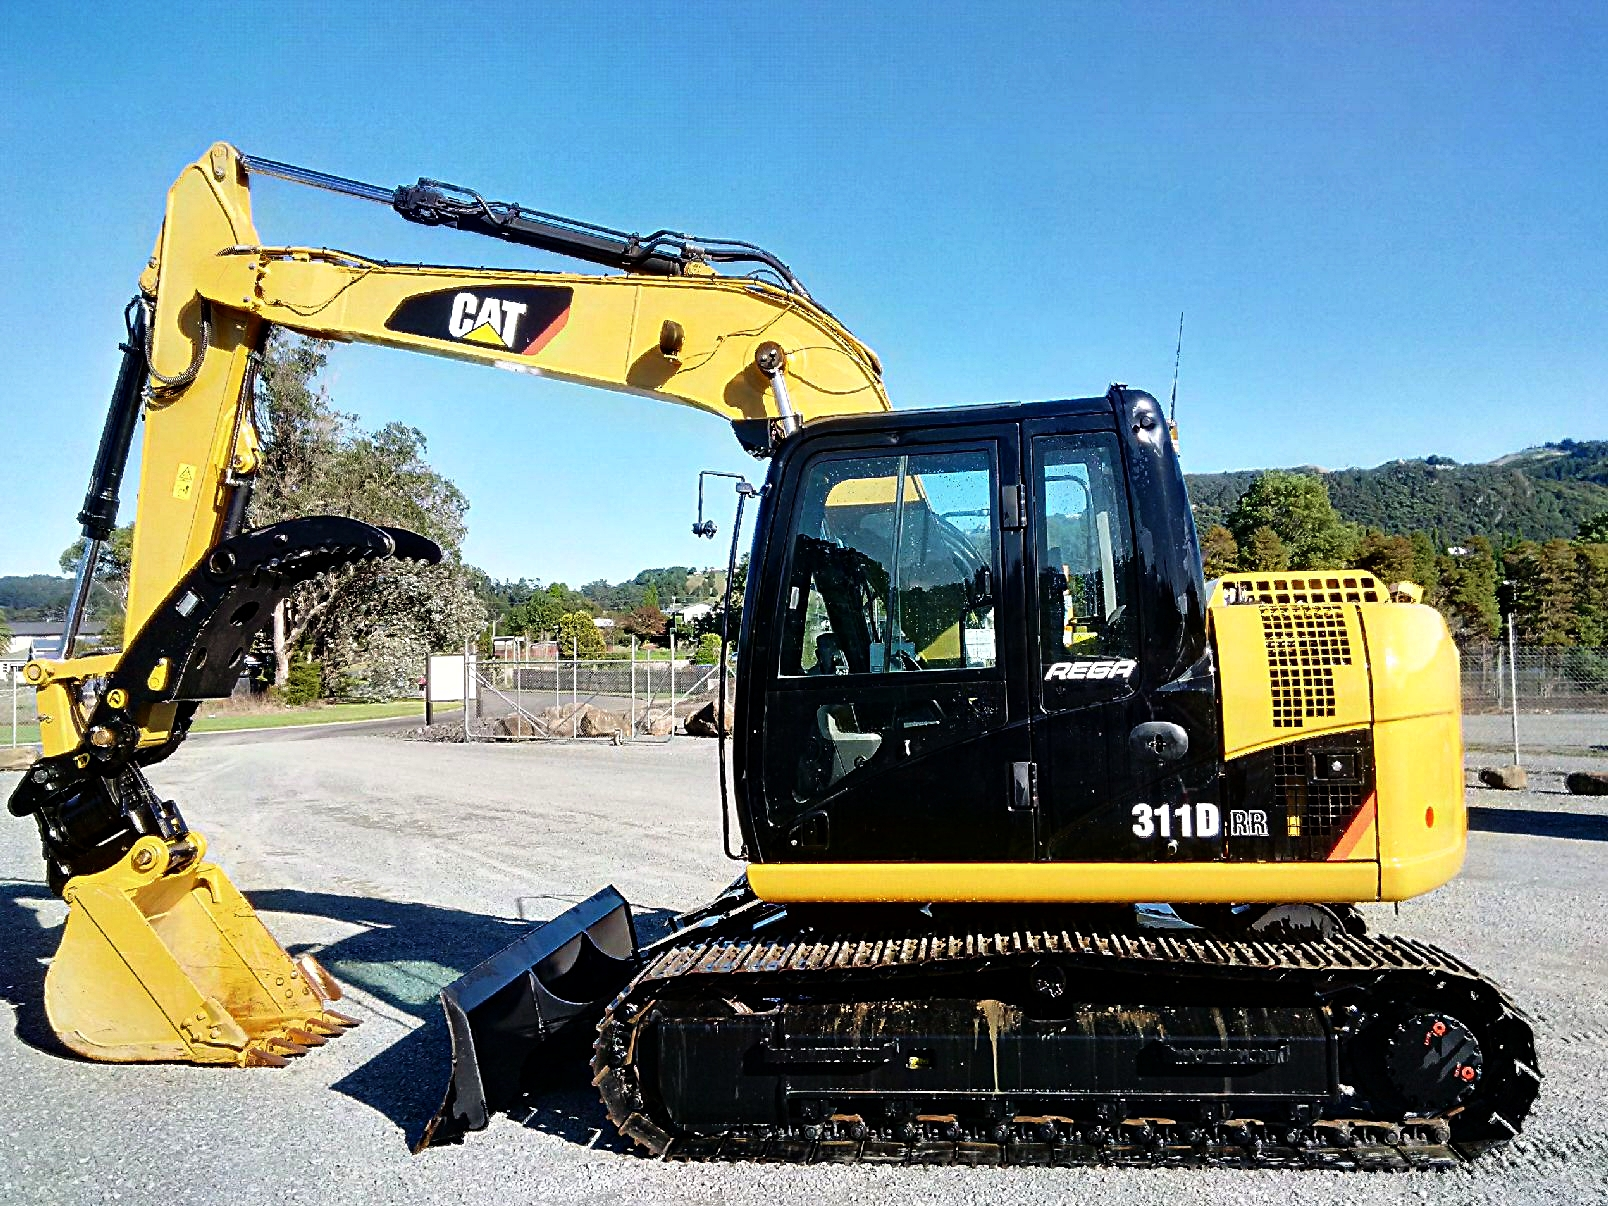 2013 CAT 311DRR fitted with Doherty Powerclamp & Snaplock+Tilt hitch